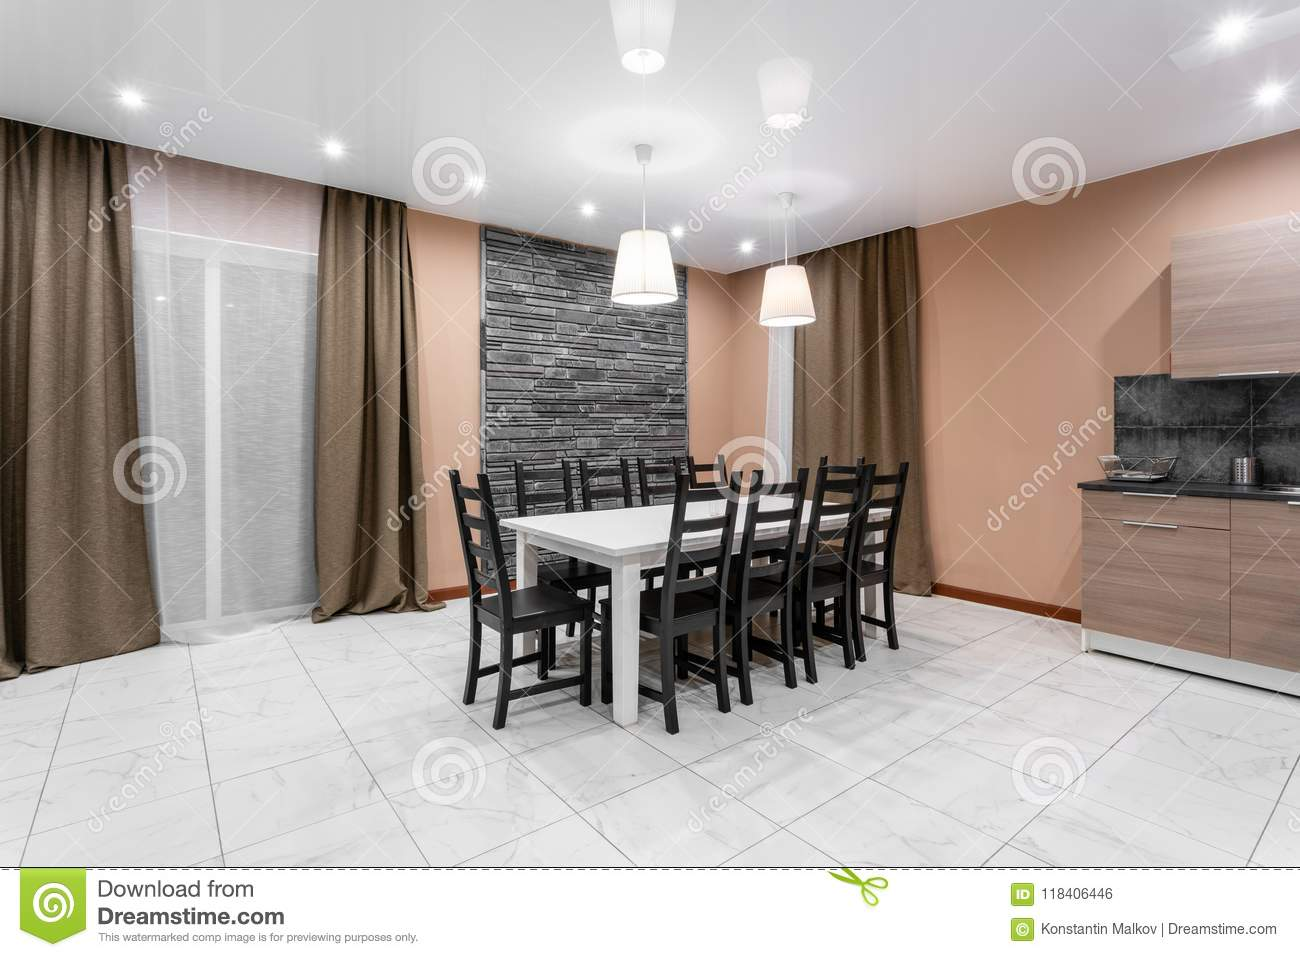 Dining Table For Ten People Modern Minimalism Style Drawing Room Interior Simple And Inexpensive Living Room With Stock Photo Image Of Marble House 118406446